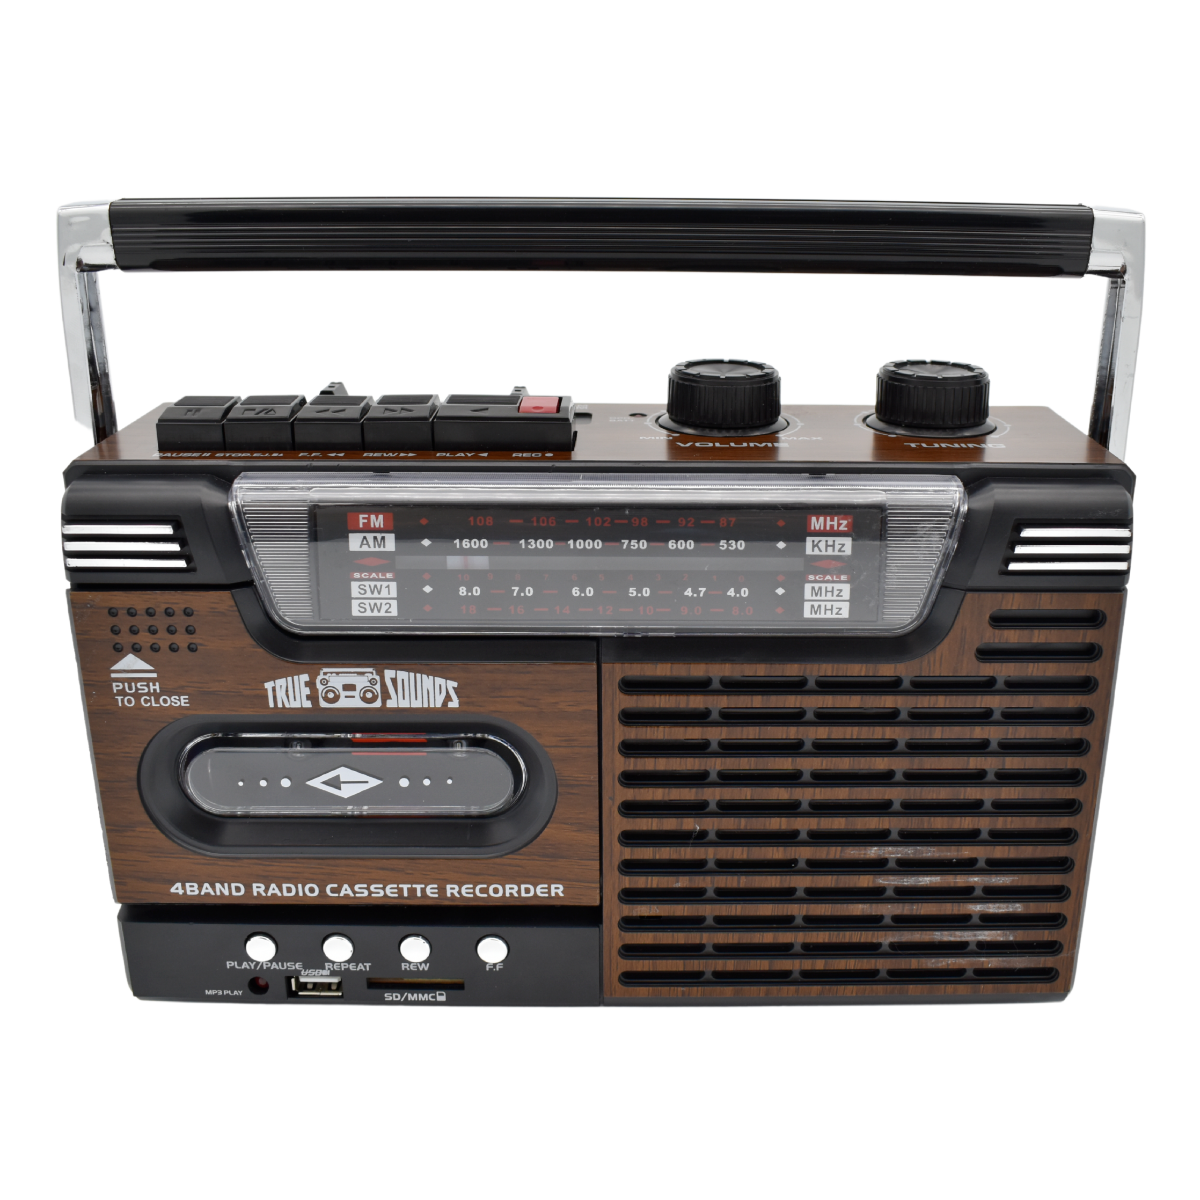 True Sounds 80s Funk Portable Radio And Cassette Player